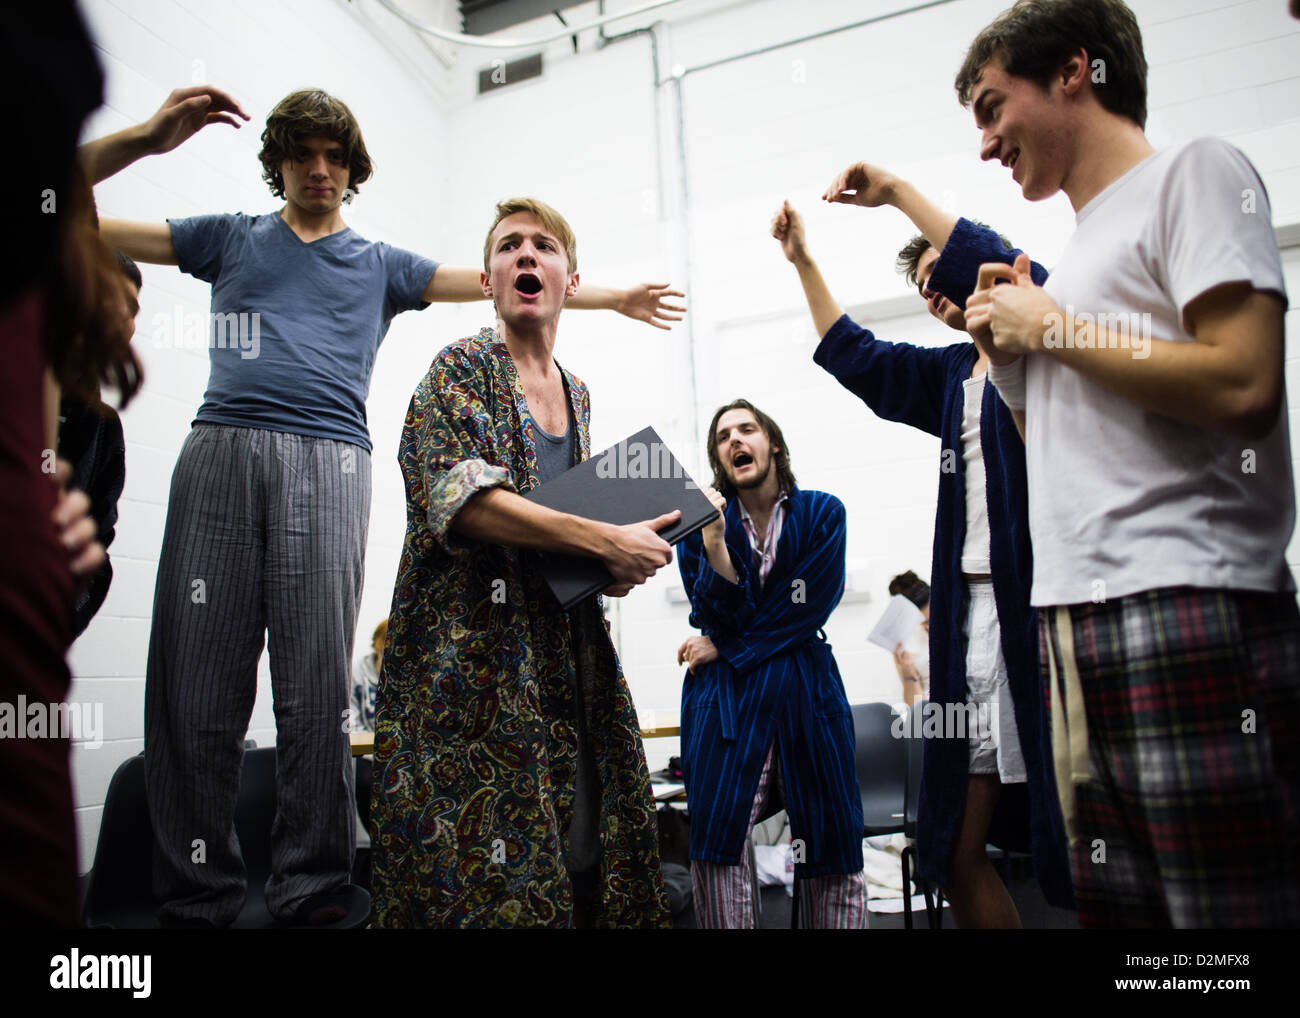 An amateur student production of One Flew Over the Cuckoos Nest, Aberystwyth University, UK - Stock Image